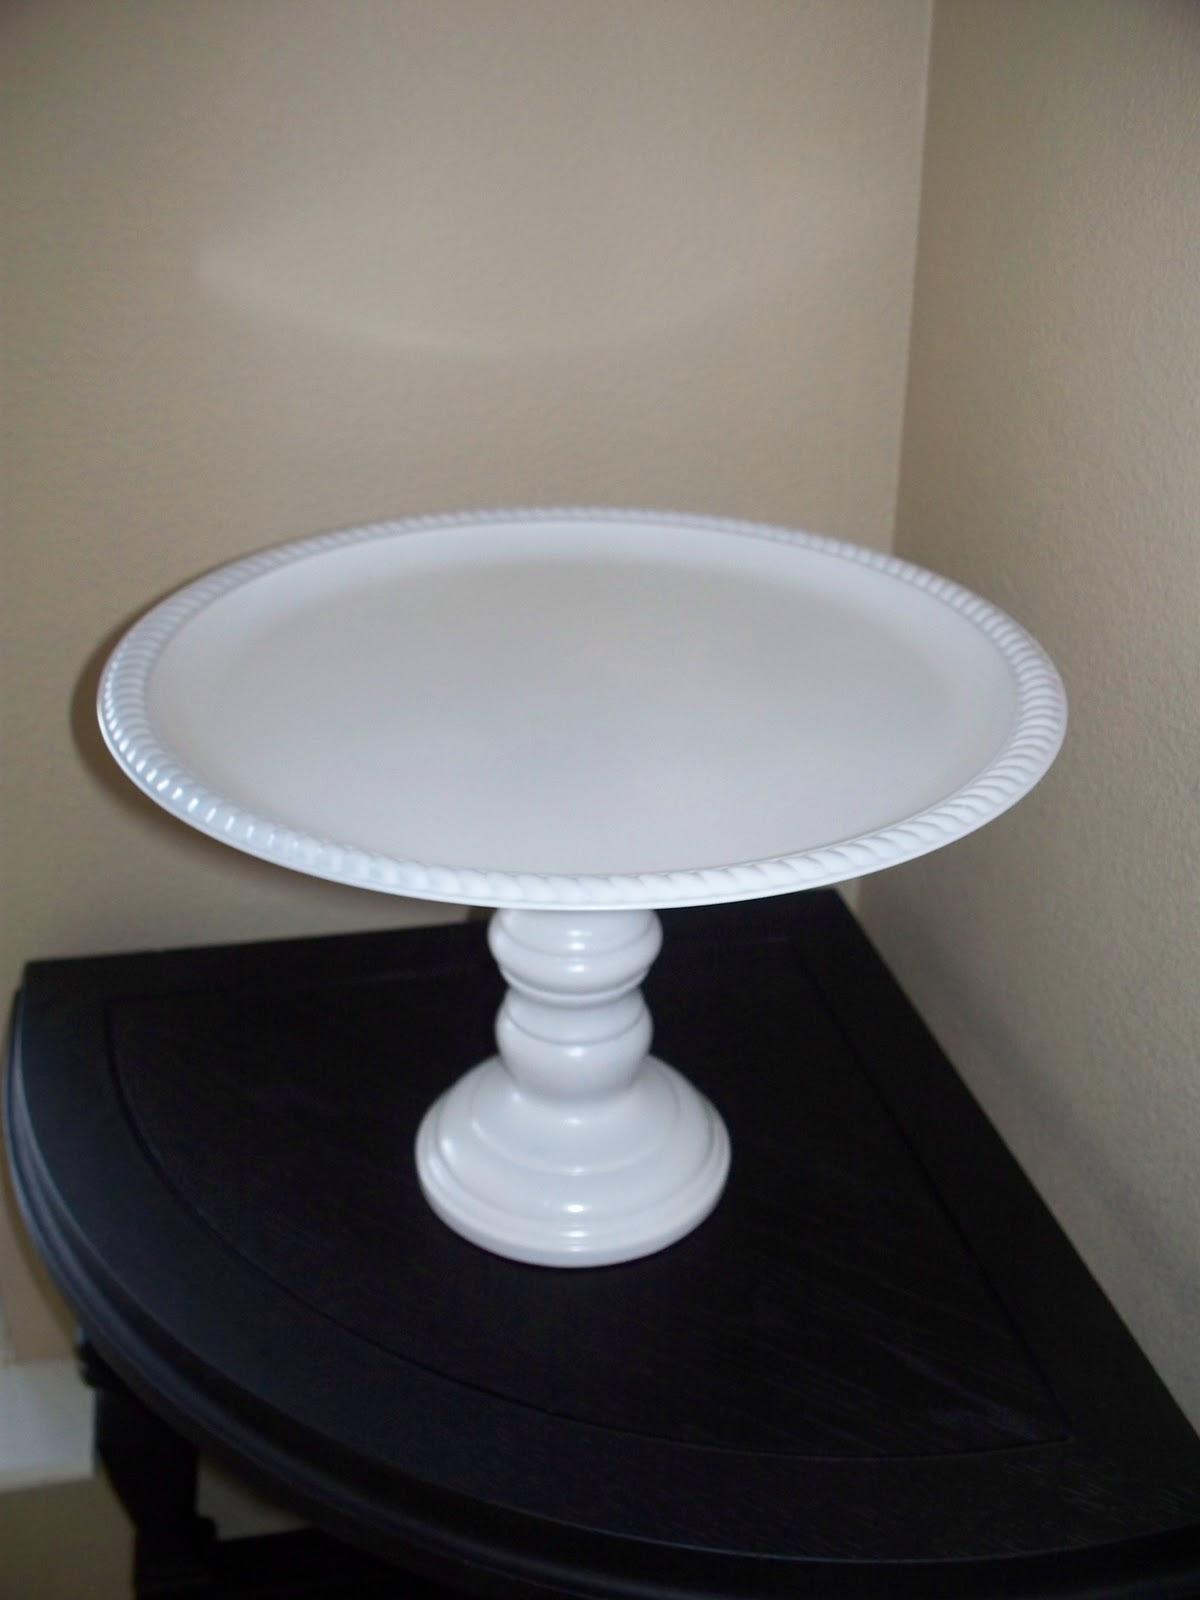 Cake Stand With Dome Plate Has Design